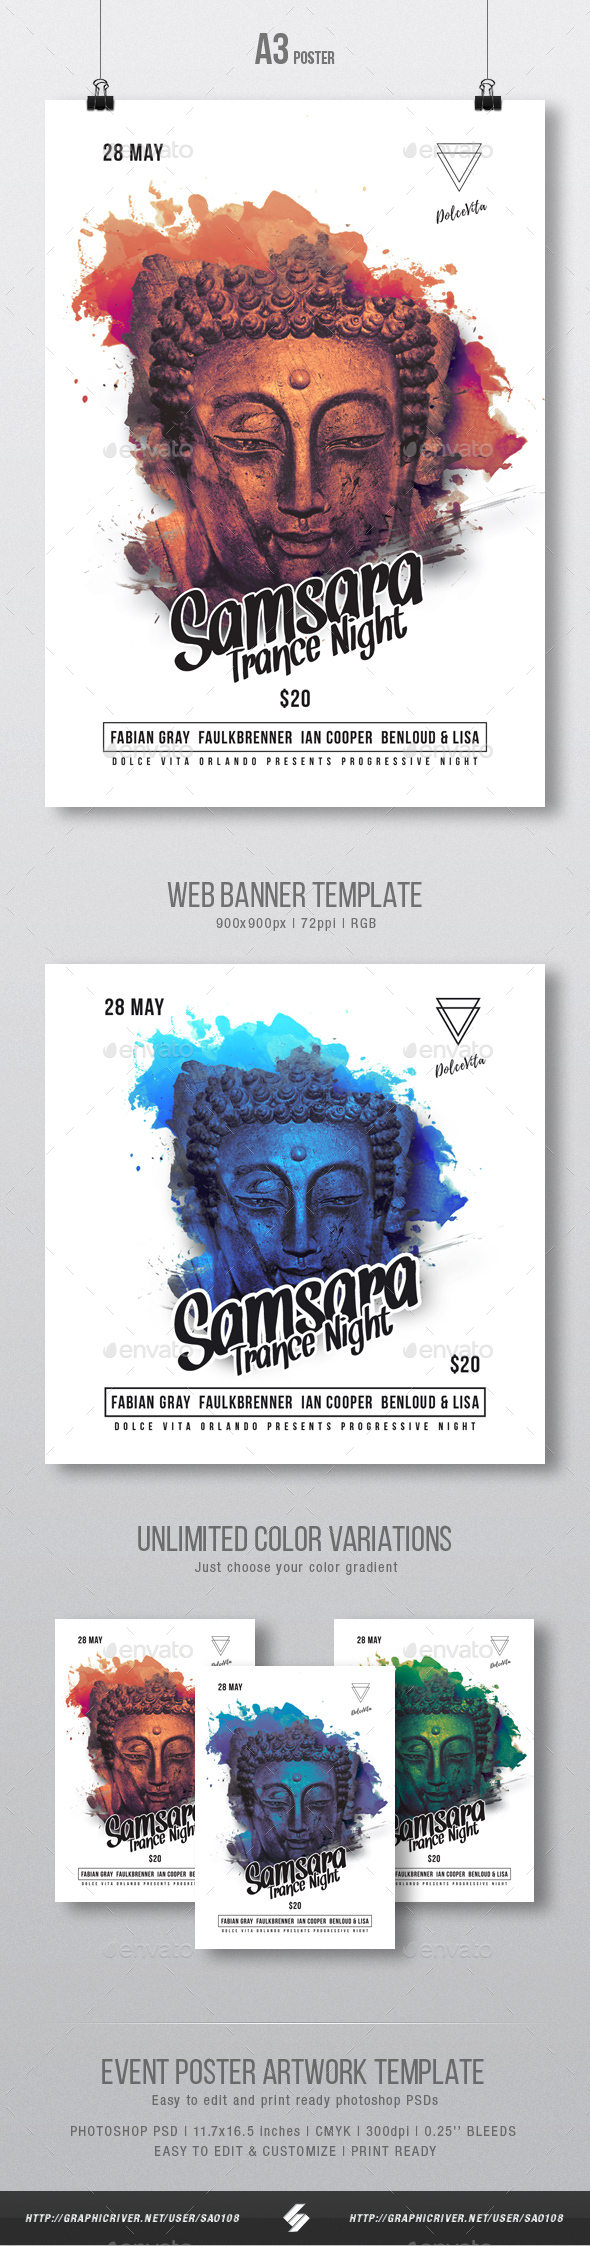 Samsara Trance Party Flyer / Poster Template A3 - Clubs & Parties Events